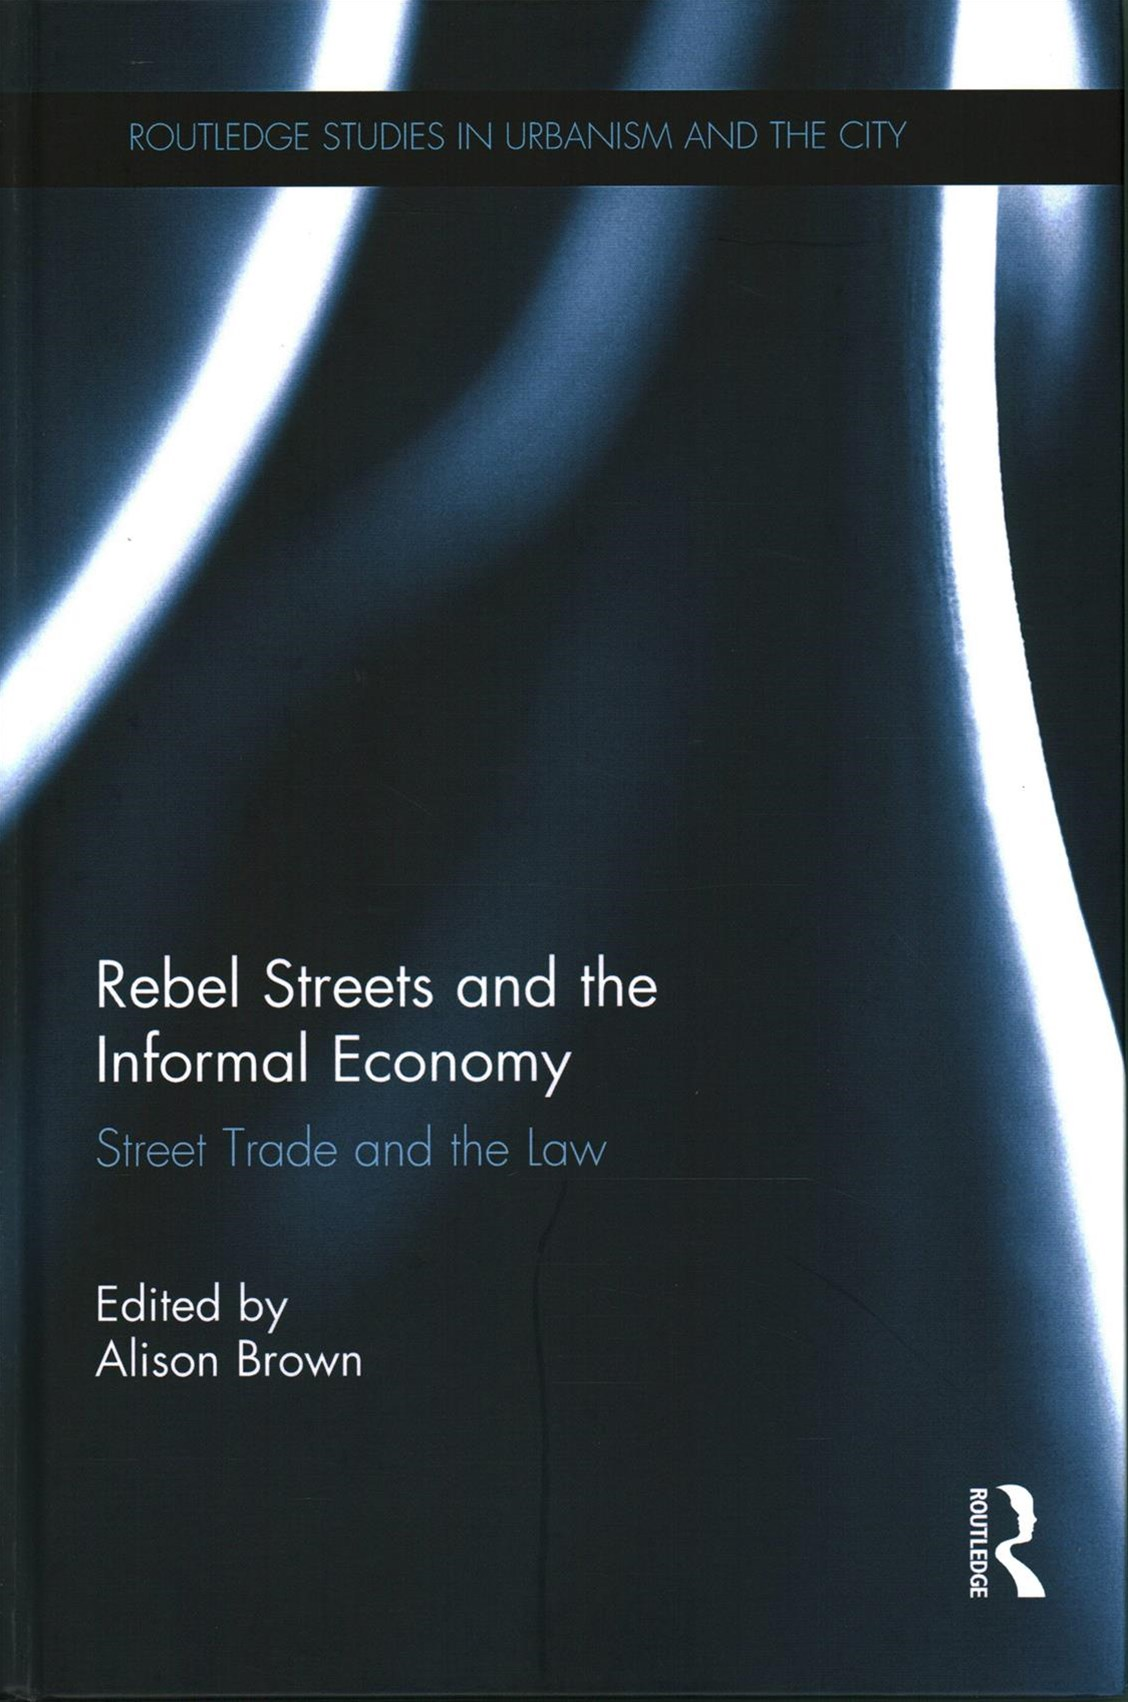 Rebel Streets and the Informal Economy